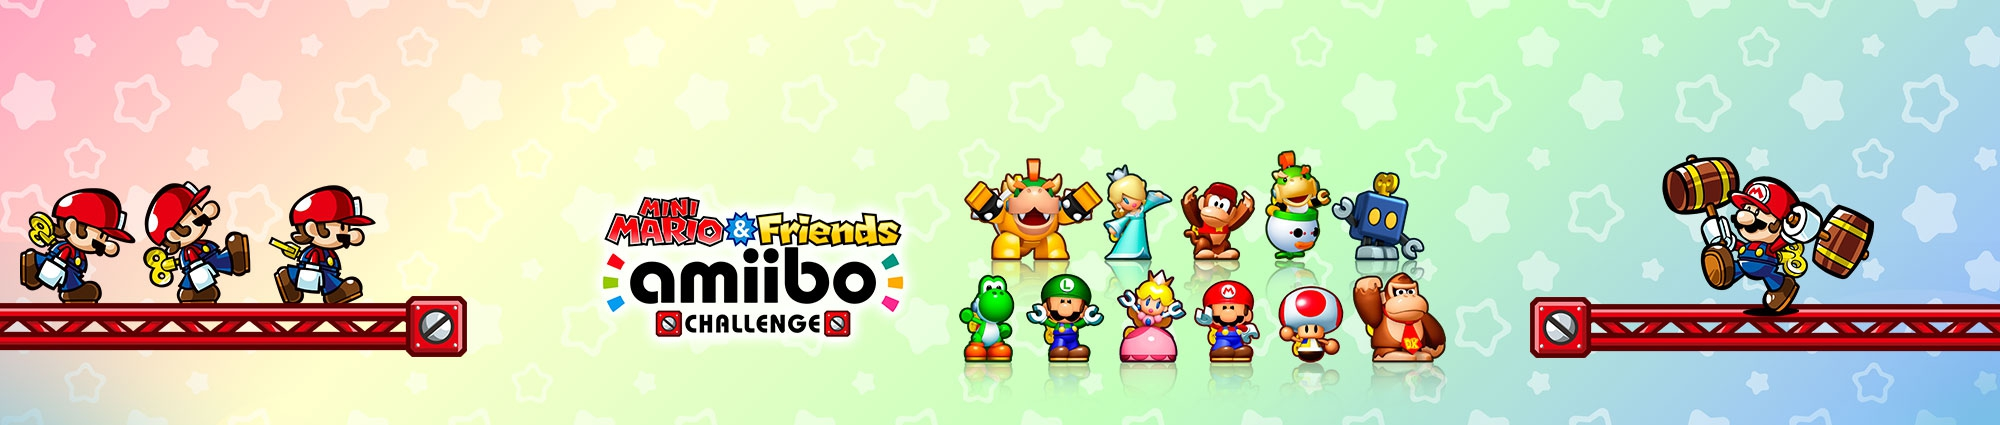 Banner Mini Mario and Friends amiibo Challenge